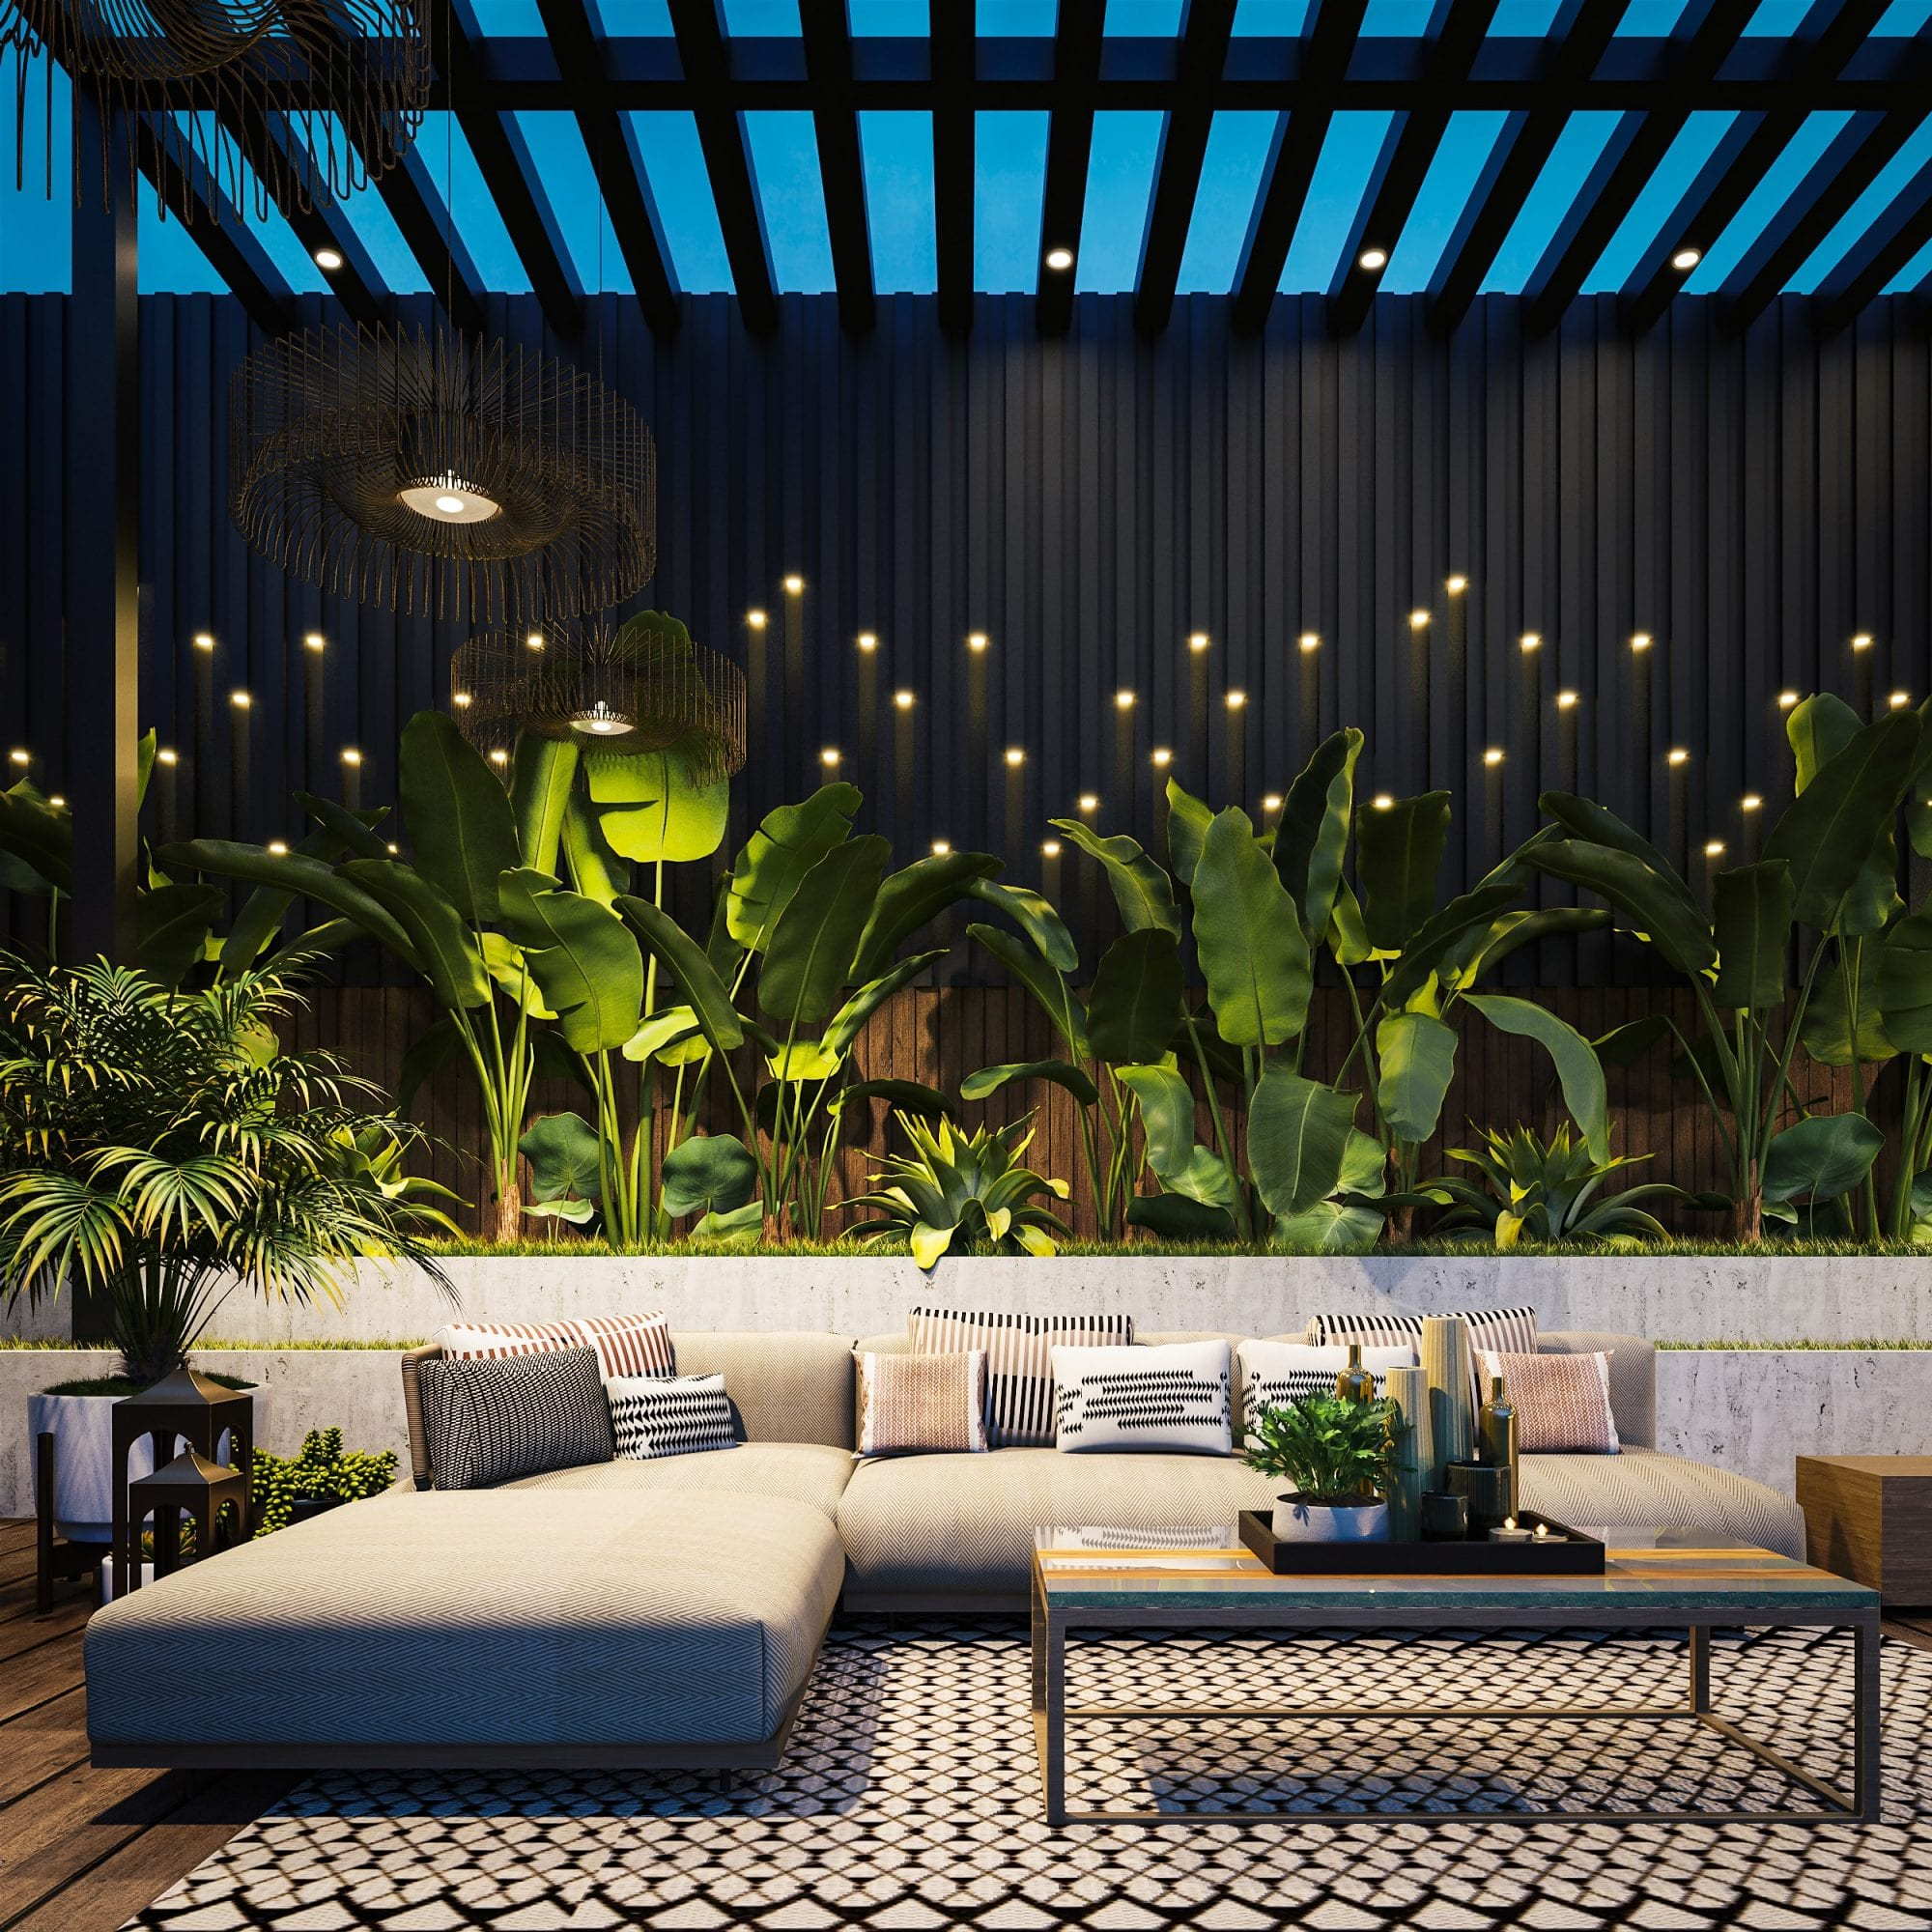 5 Ways To Transform Your Patio And Optimise Your Outdoor Space